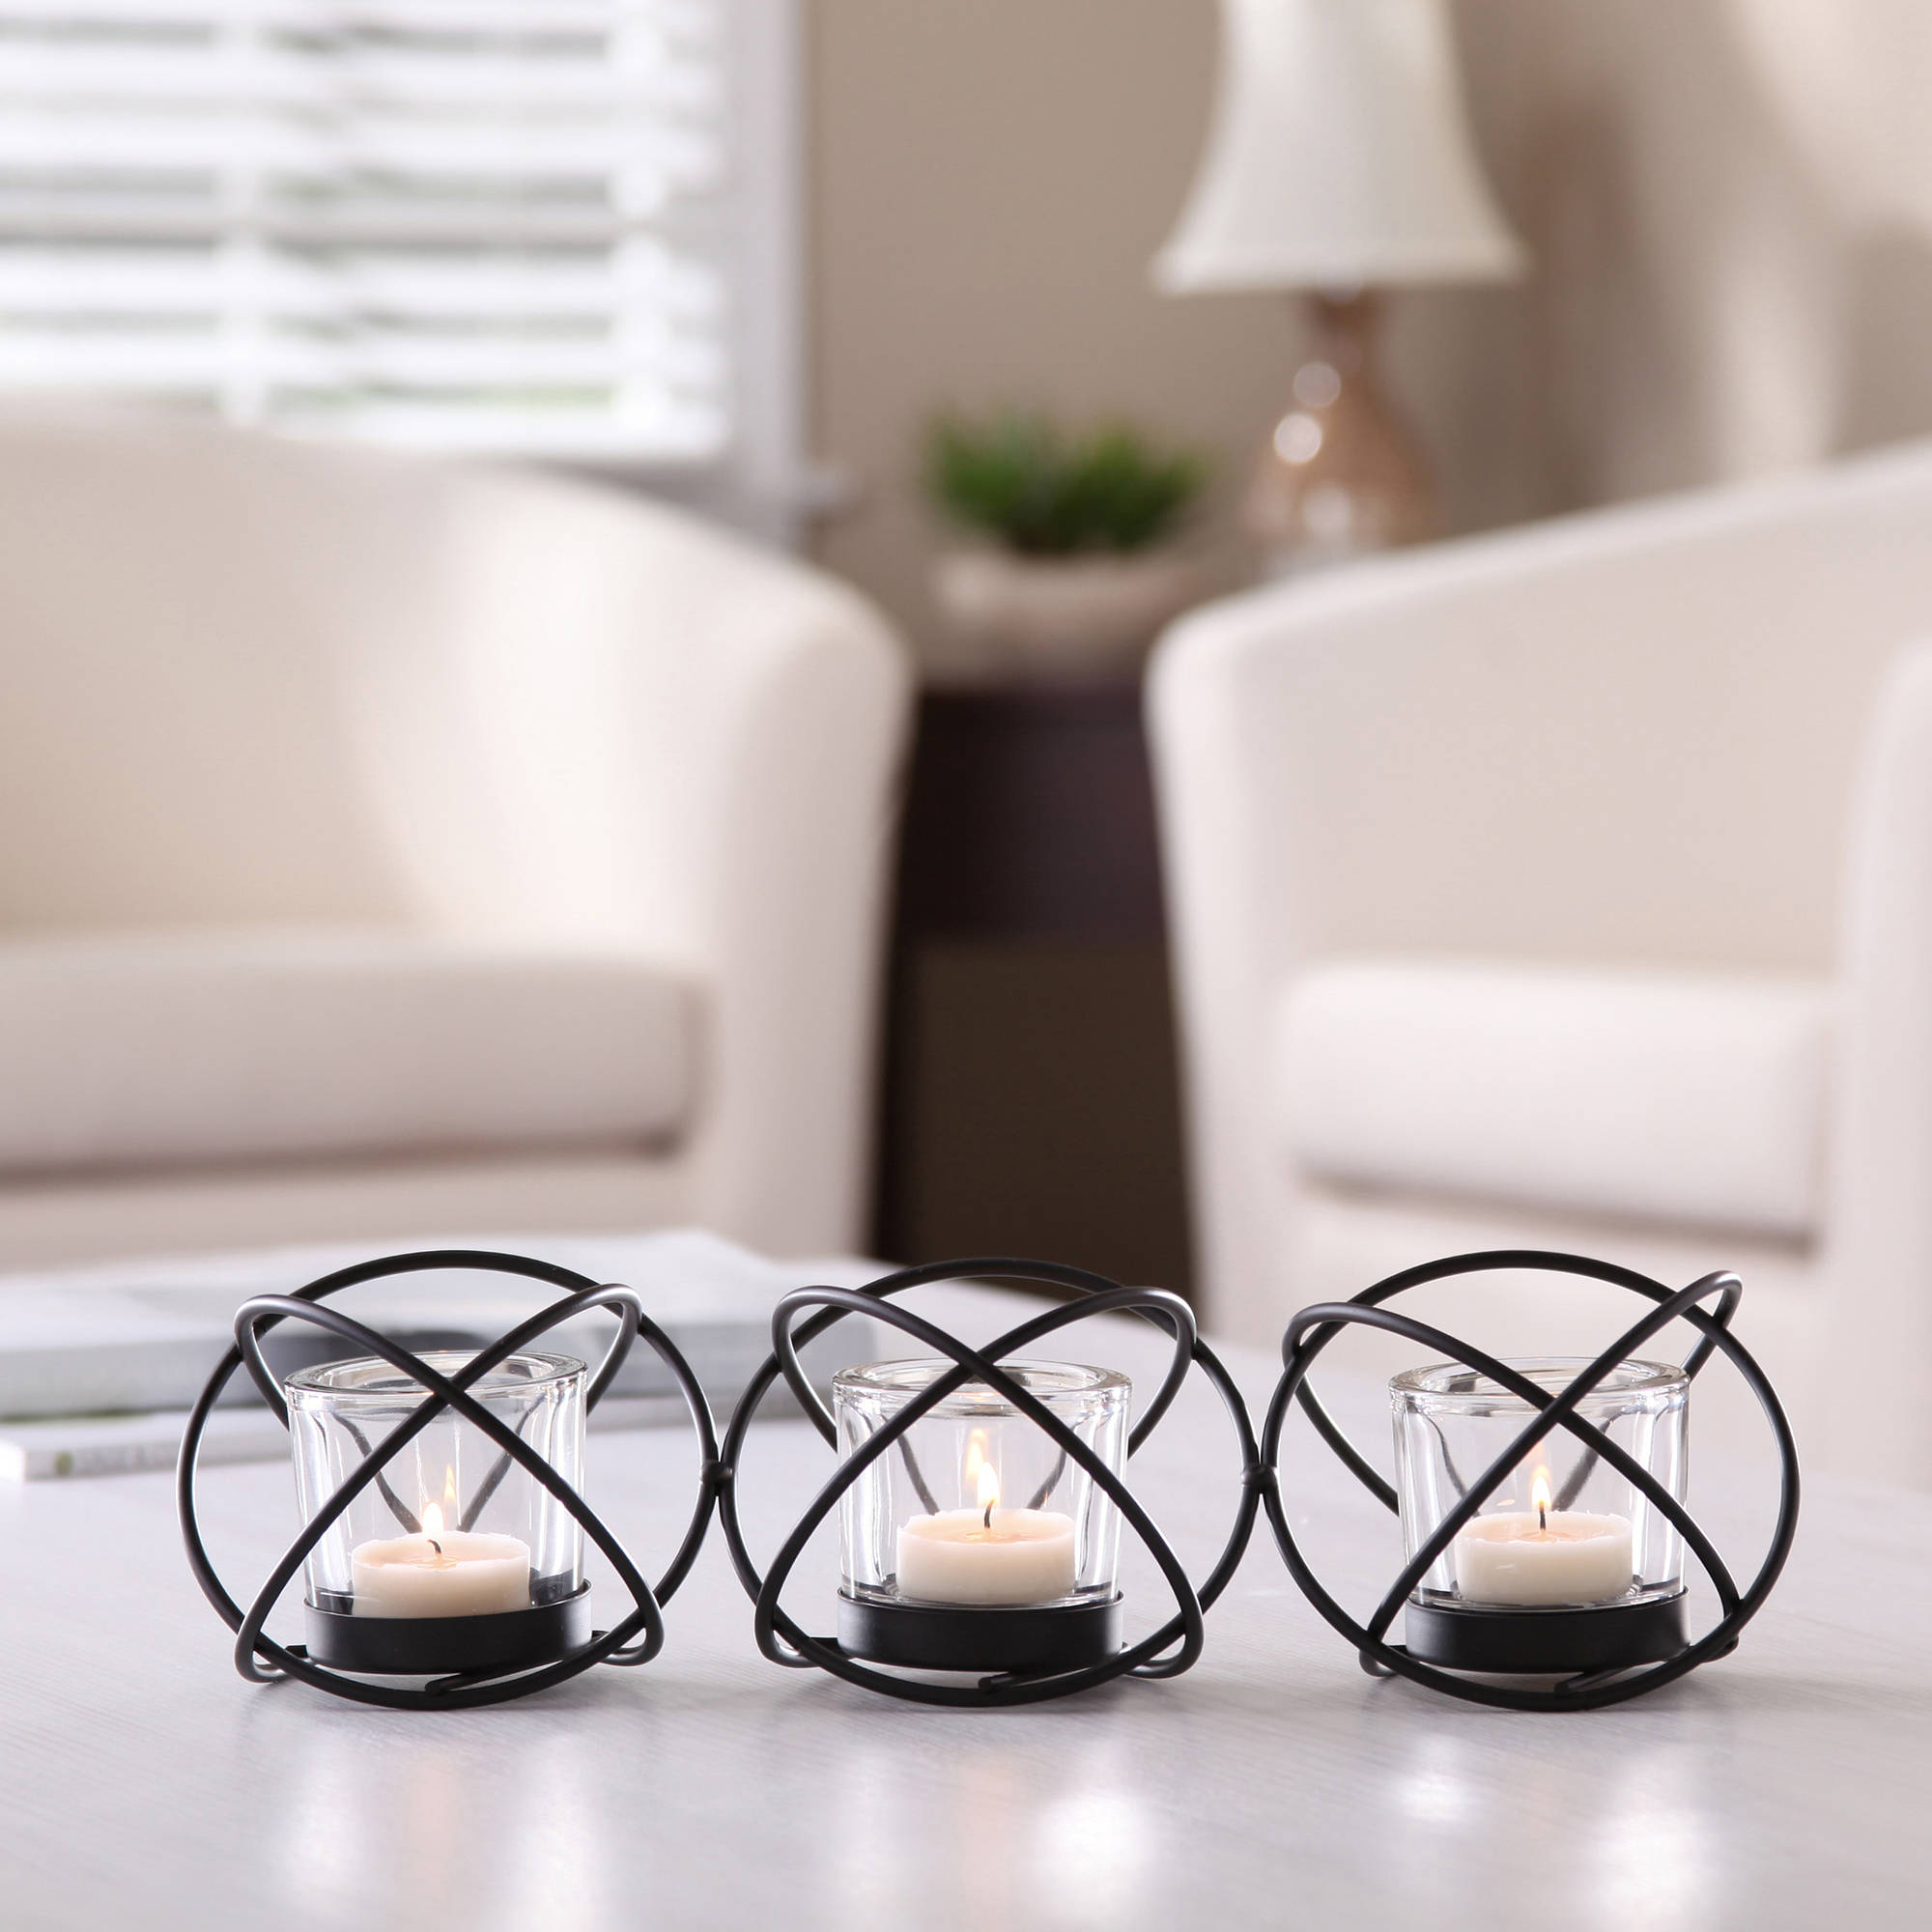 Better Homes and Gardens 3 Tealight Intertwined Rings Candle Holder, Black